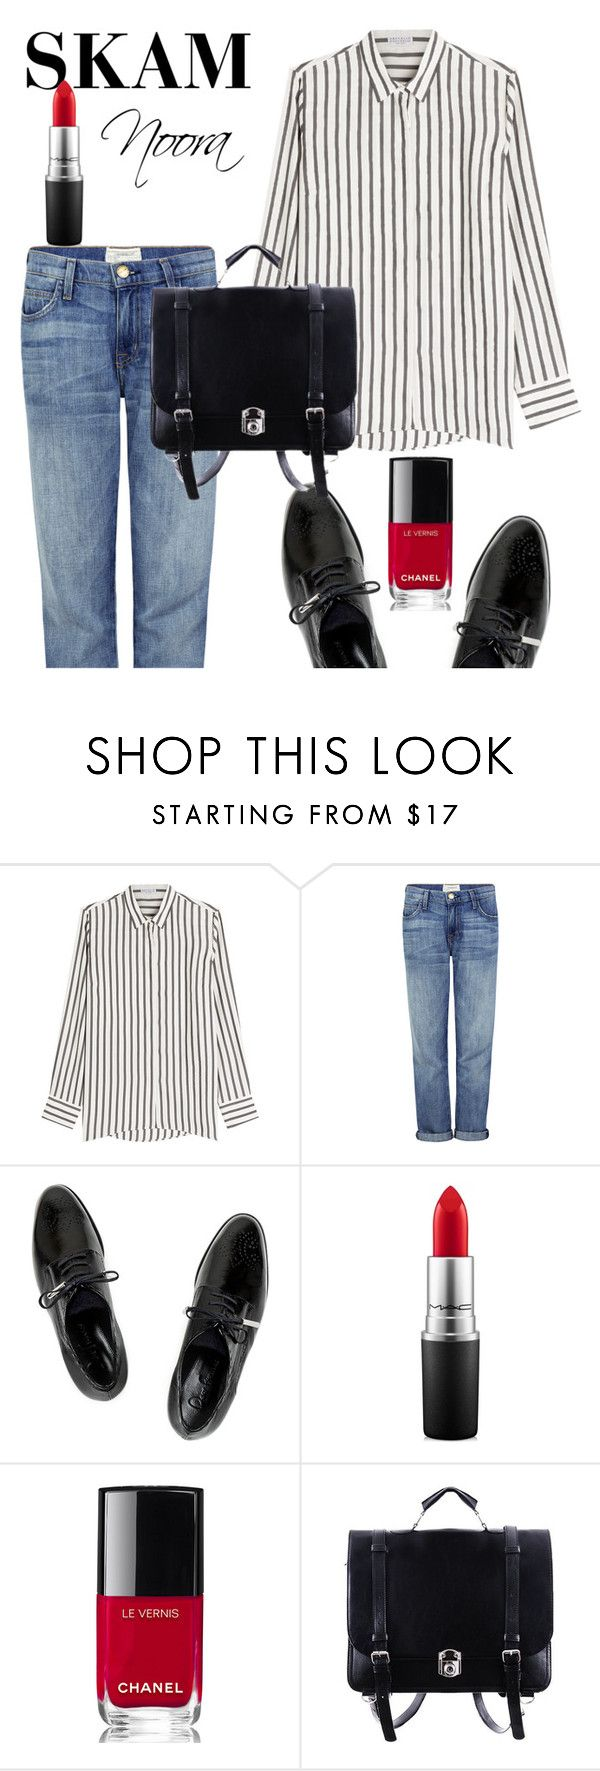 """""""Noora fra SKAM"""" by helene-saeth-fiska ❤ liked on Polyvore featuring Brunello Cucinelli, Current/Elliott, Dear Frances, MAC Cosmetics, Chanel, GetTheLook and airportstyle"""